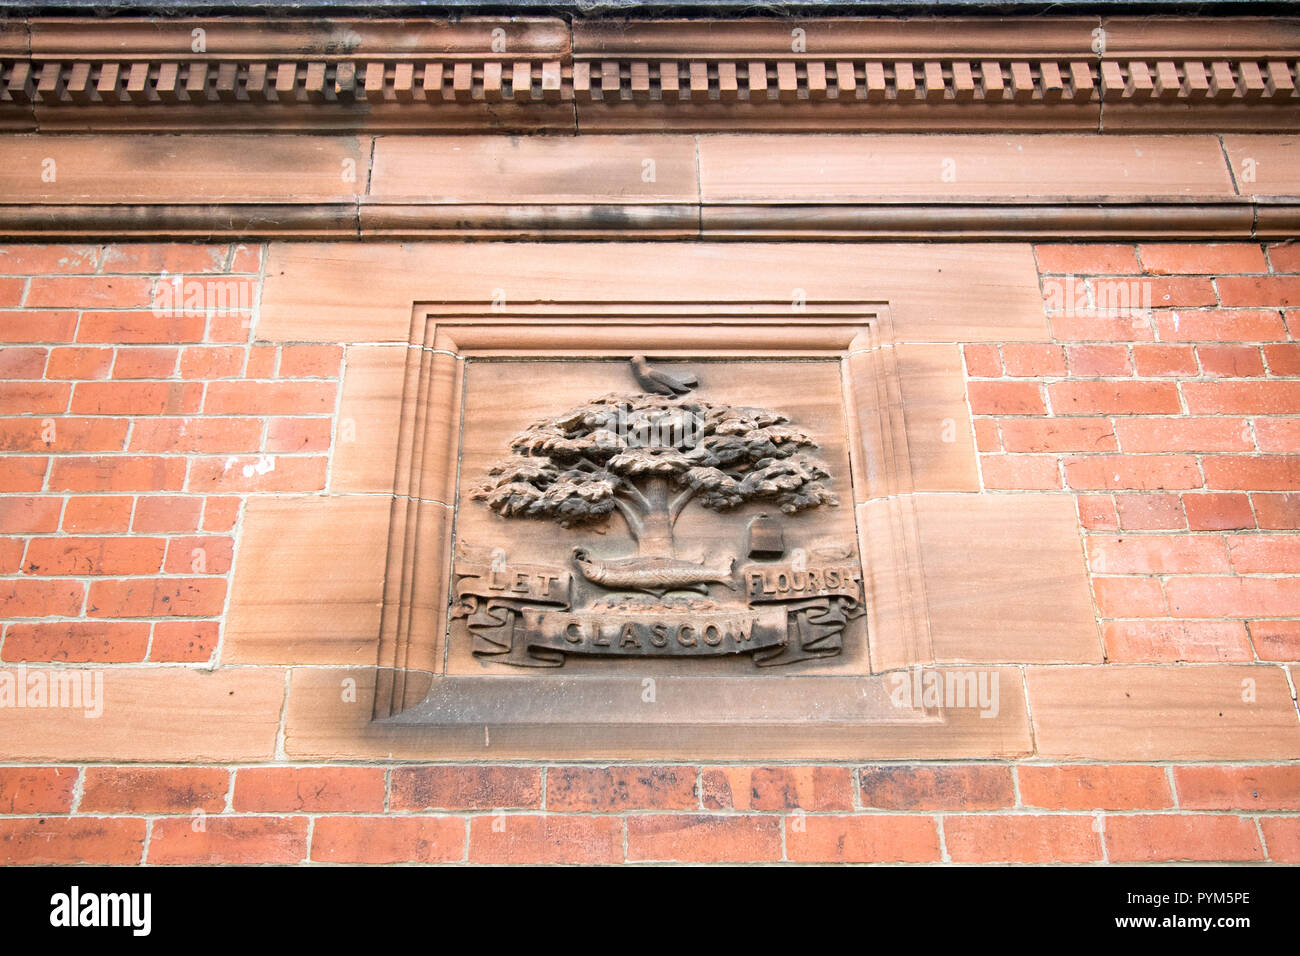 Illustrated detail of the Glasgow motto, 'Let Glasgow Flourish,' on a brick building, Botanic Gardens, Glasgow, Scotland - Stock Image